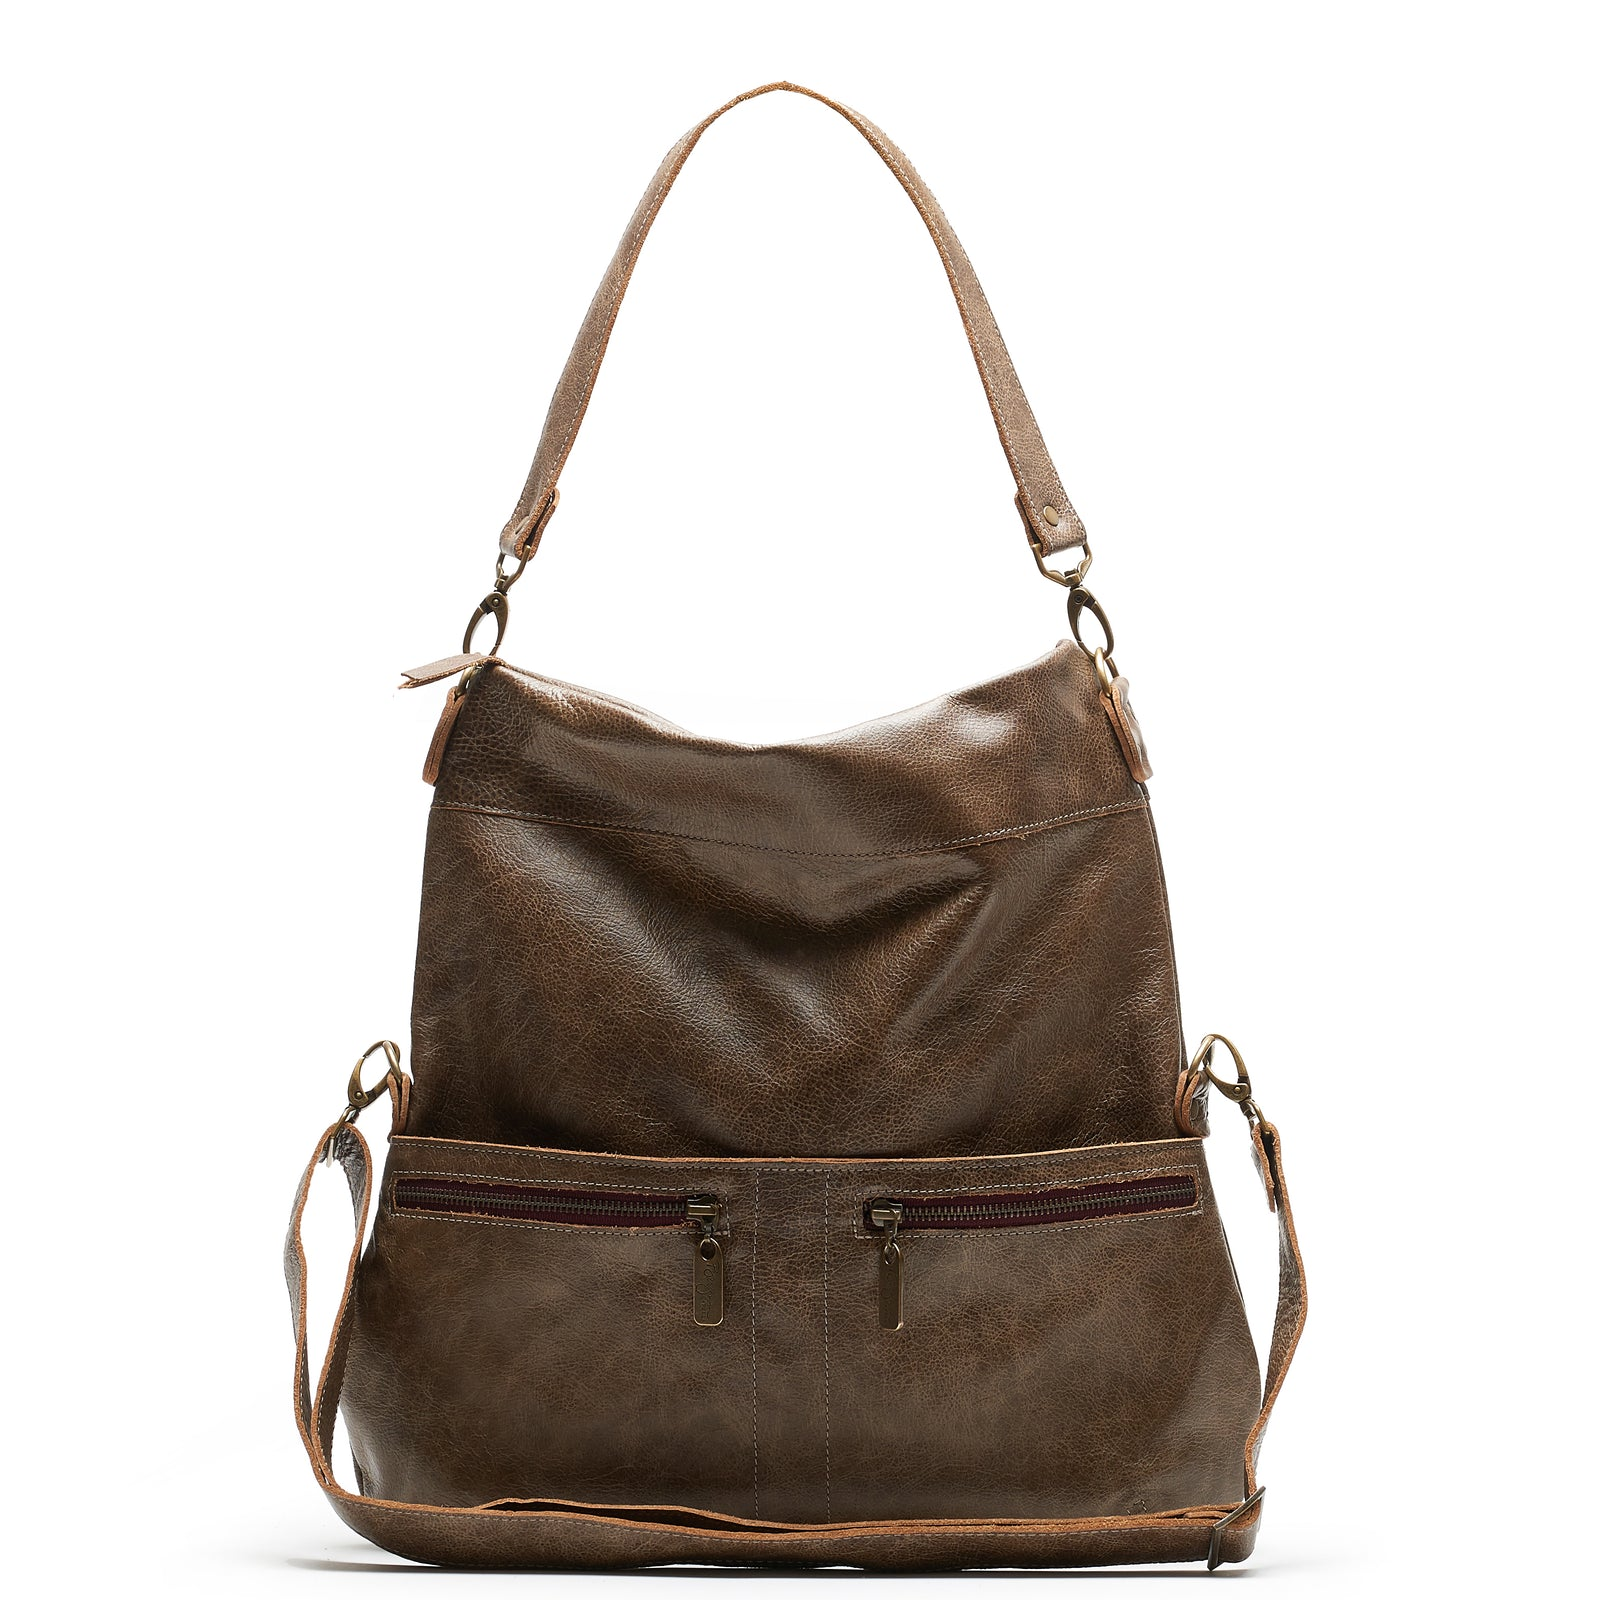 Lauren Crossbody - Olive Branch - Brynn Capella, Large Crossbody